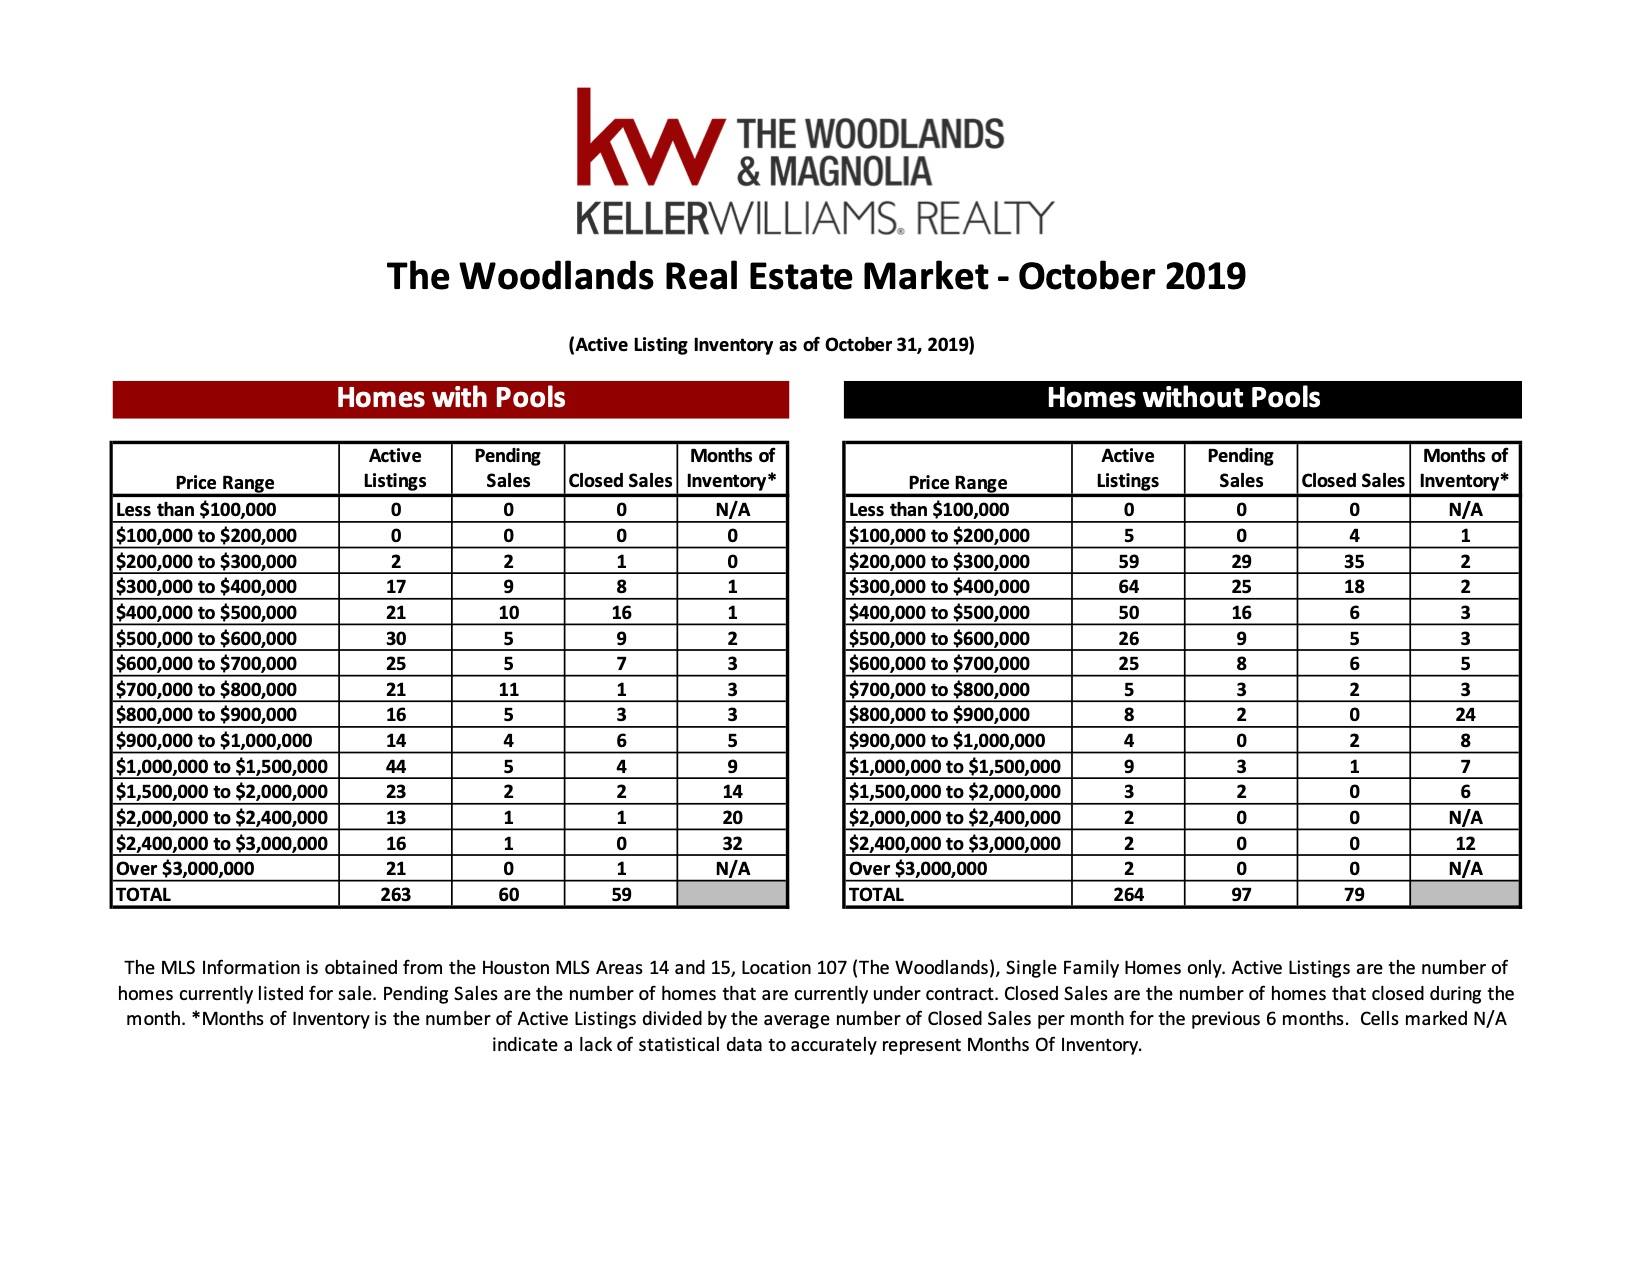 , October 2019 MarketWatch Report – The Woodlands, KW Woodlands